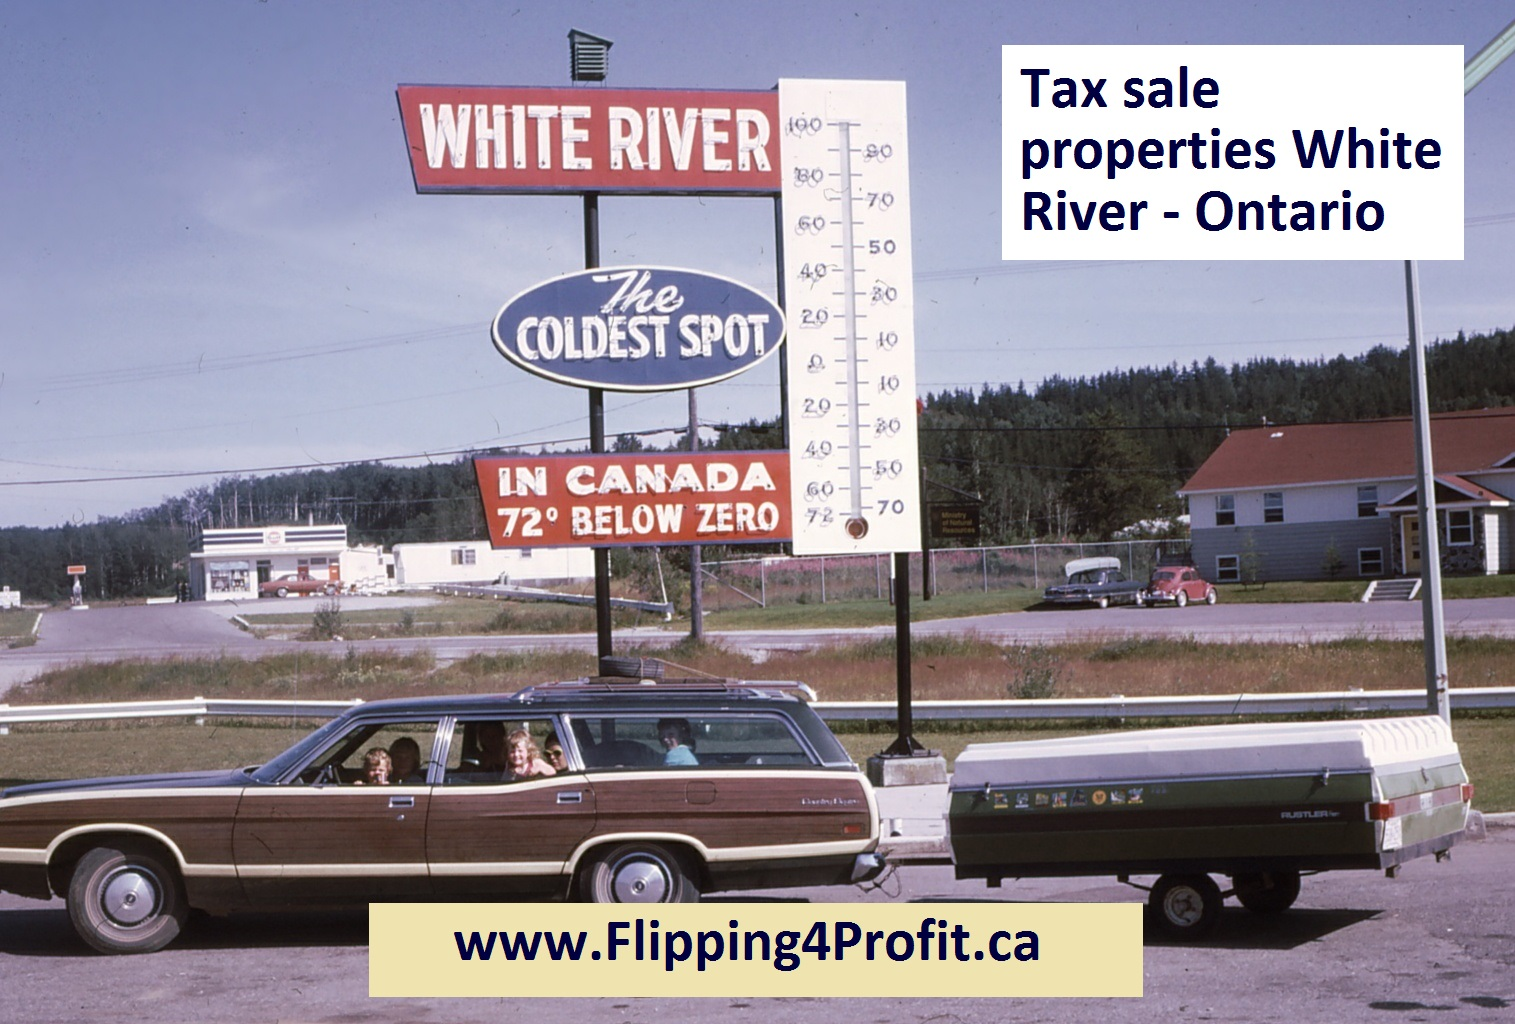 Tax sale properties White River - Ontario